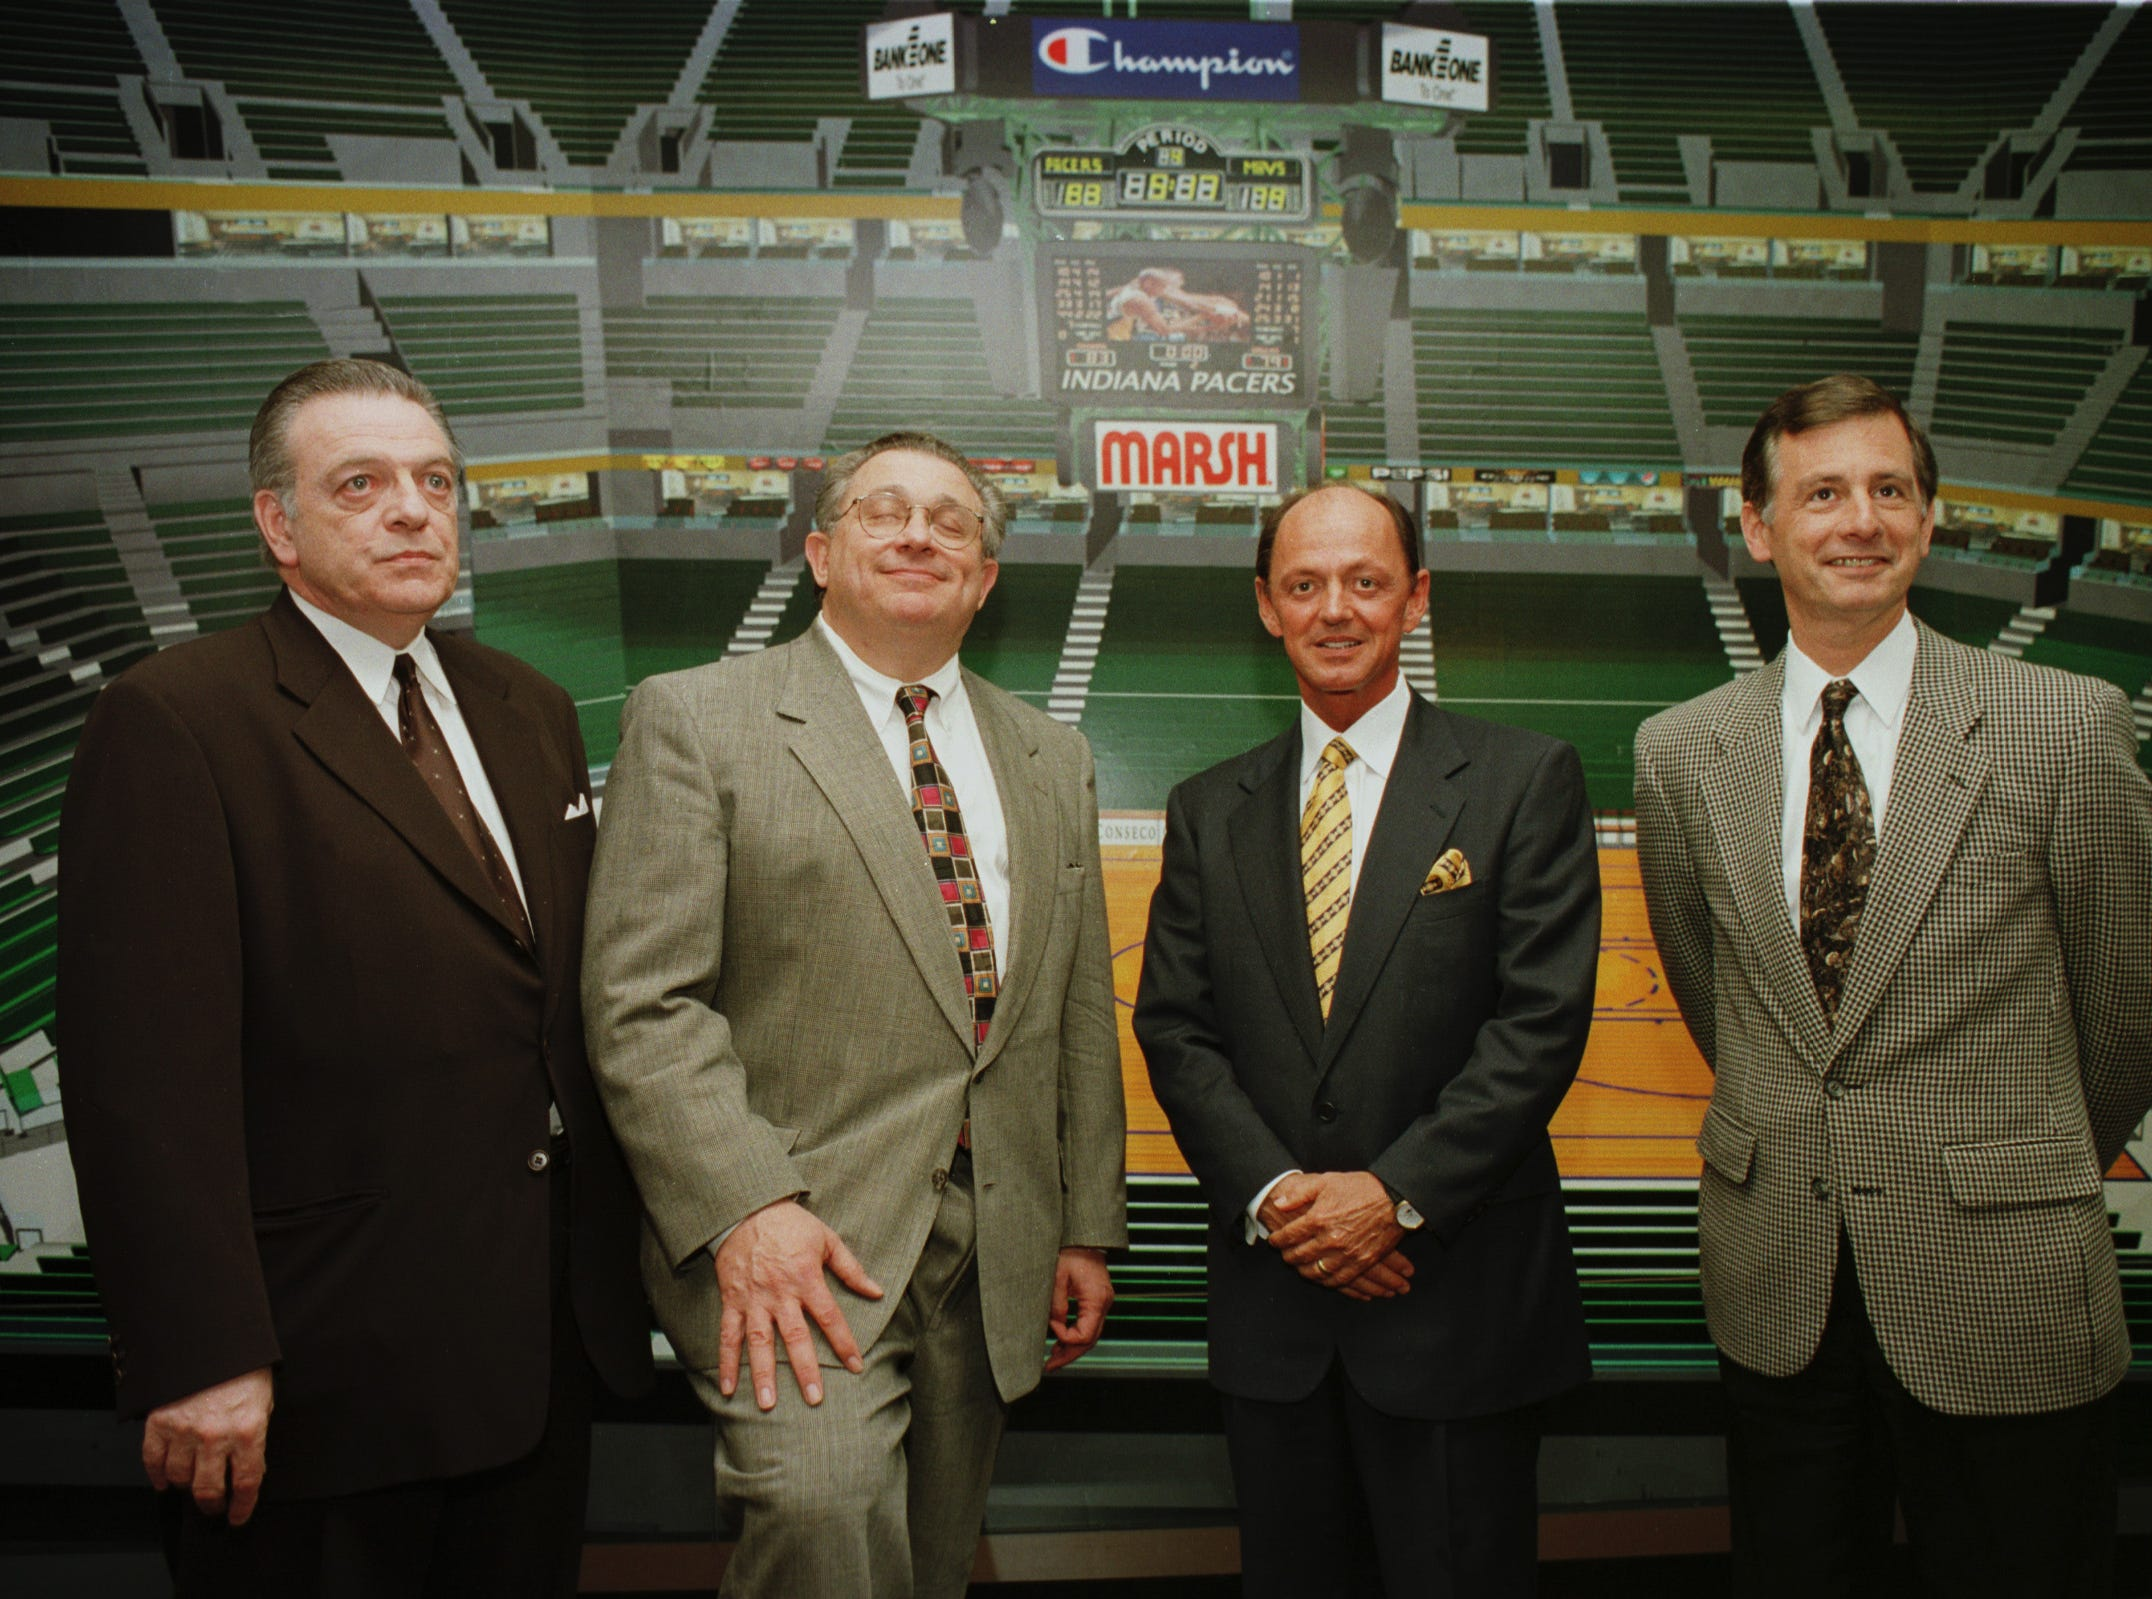 Donnie Walsh, Herbert Simon, Stephen Hilbert and Mayor Stephen Goldsmith pose in front of a mural of the new Pacers home, at the May 22, 1998 announcement of a 20-year agreement between the Pacers and Conseco, Inc. for the naming rights to the PacersÕ new arena, to be named Conseco Fieldhouse.